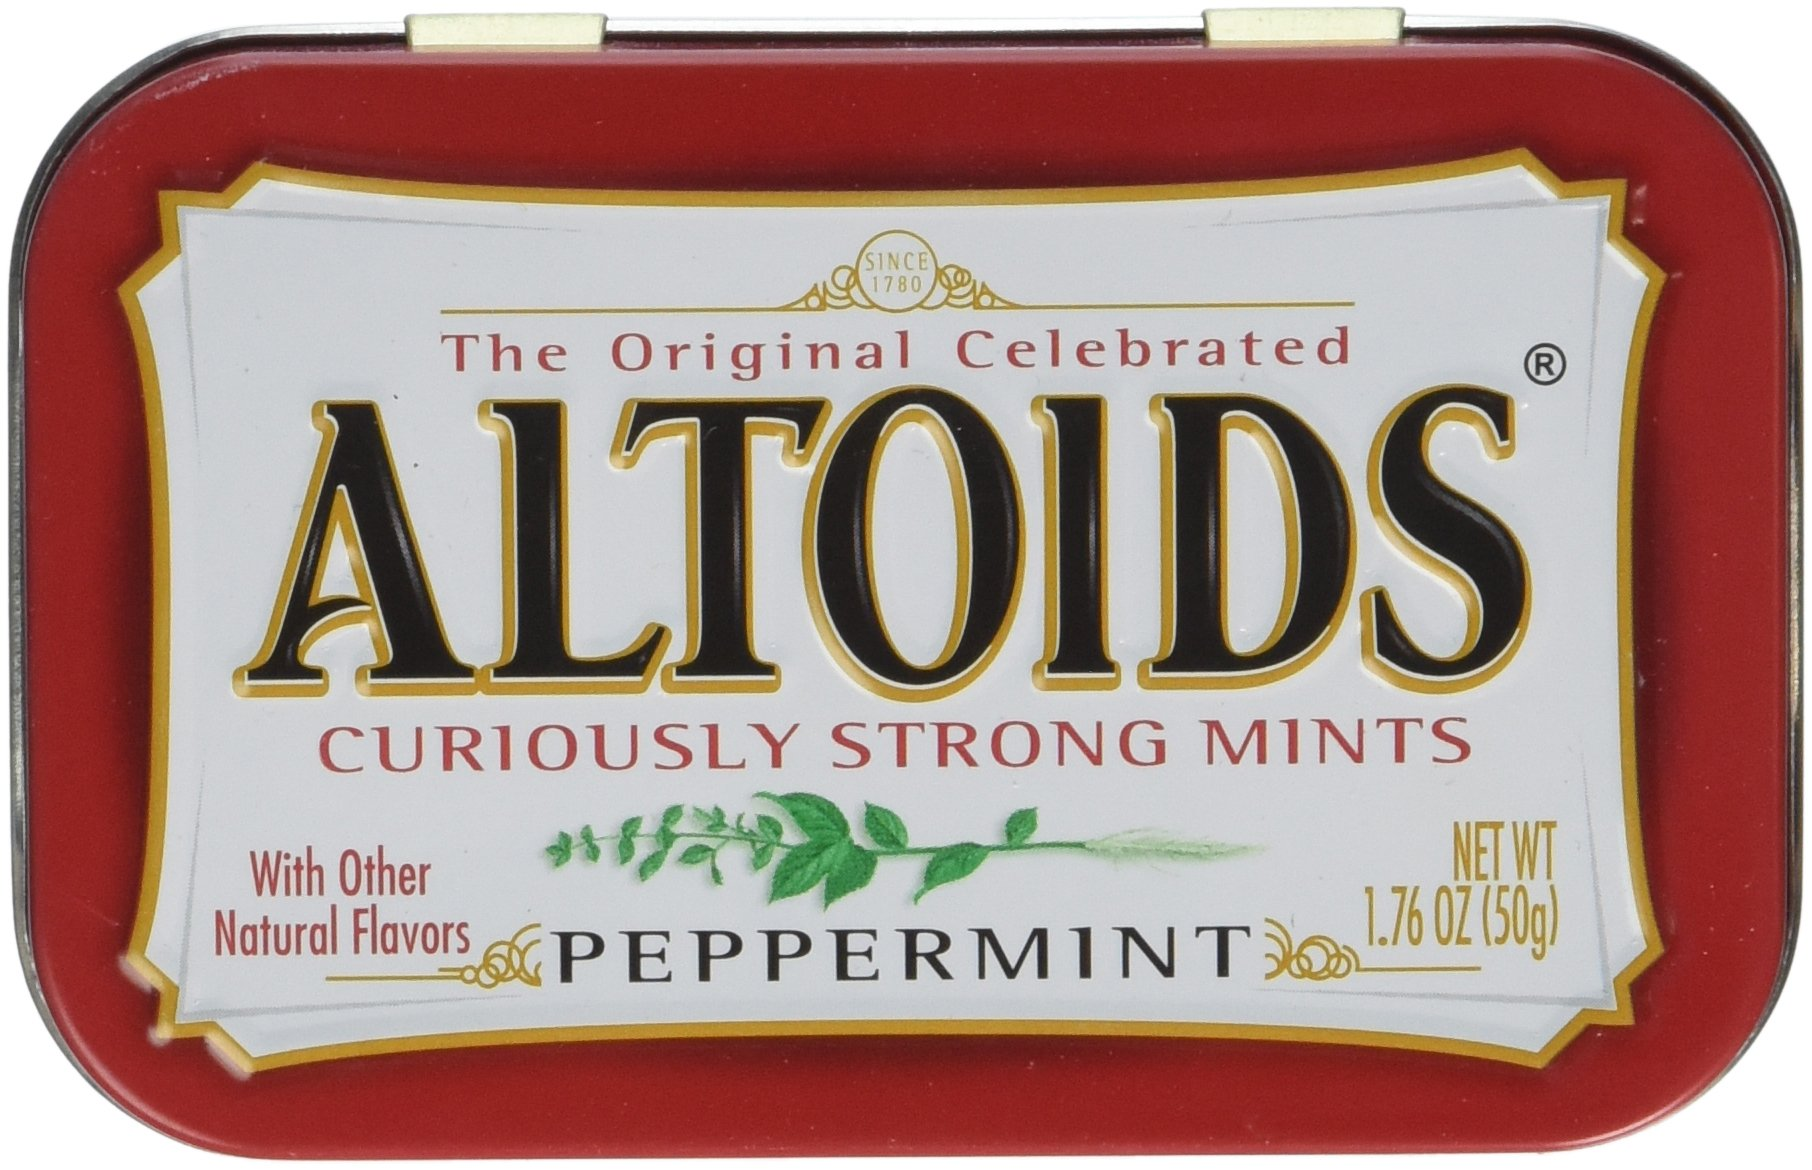 Altoids Peppermint Mints - 6 paks